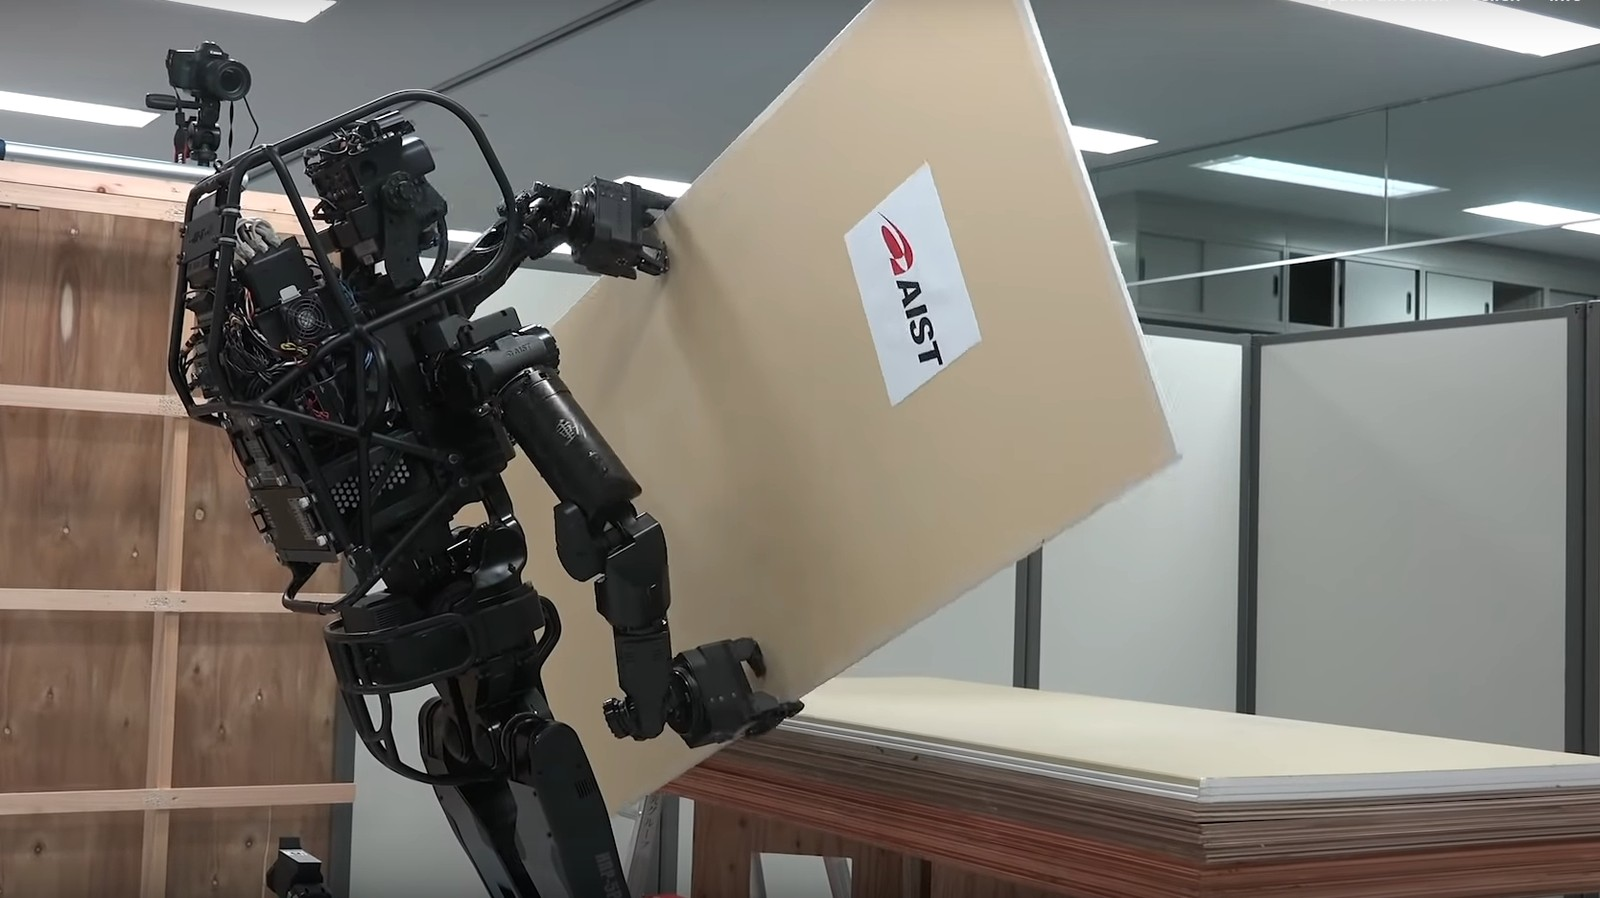 Roboter auf dating-sites